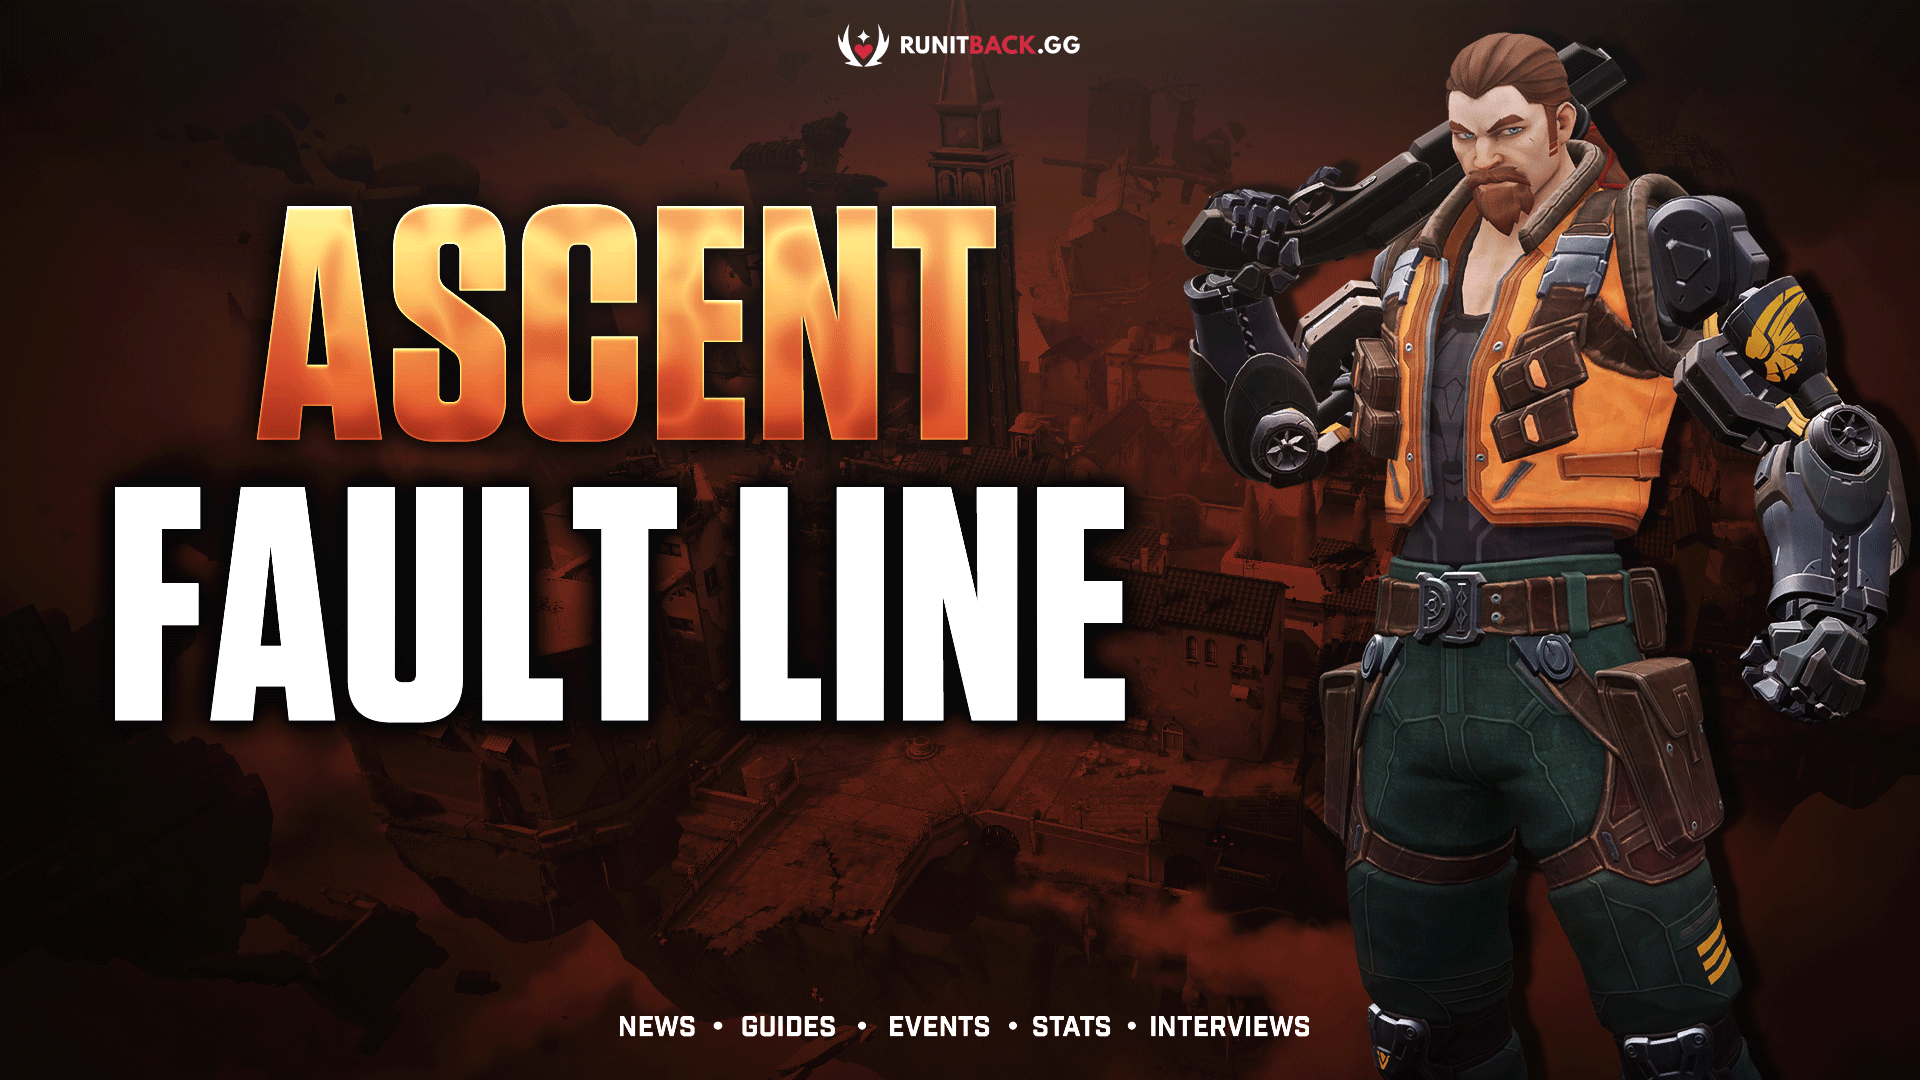 Breach Fault Line Guide: Ascent